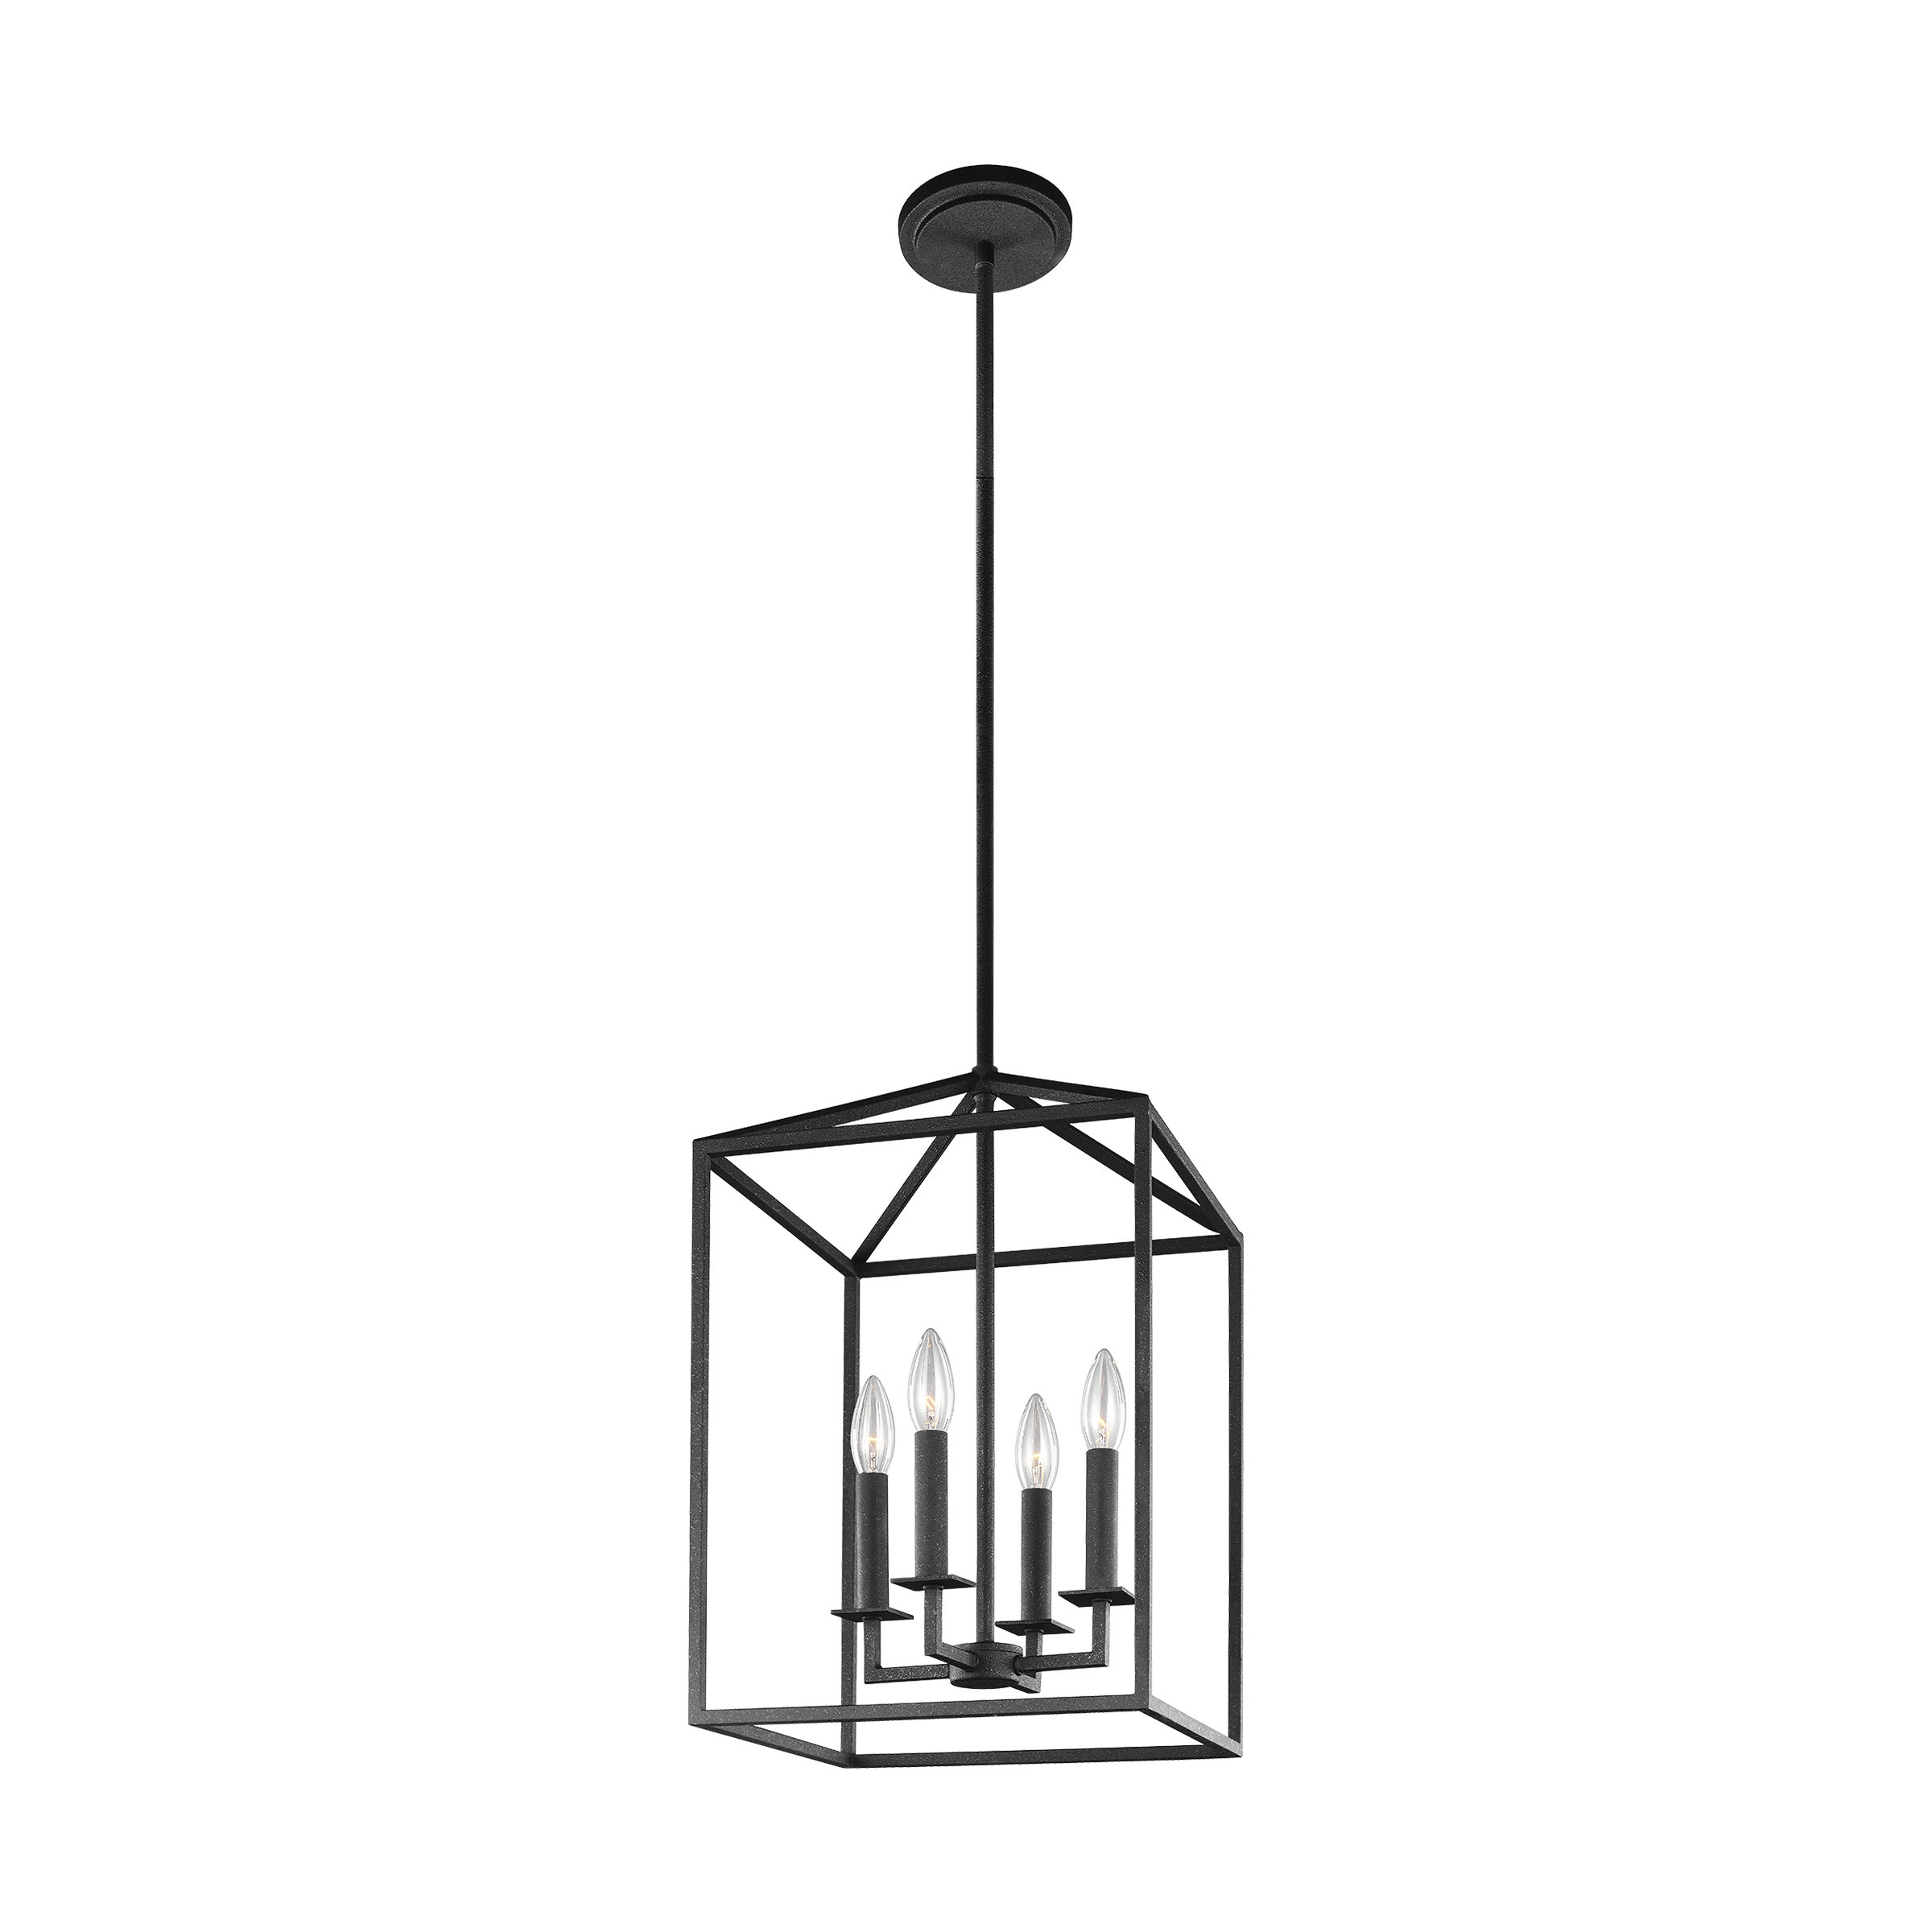 Odie 8 Light Kitchen Island Square / Rectangle Pendants With Regard To Most Up To Date Odie 4 Light Lantern Square / Rectangle Pendant (View 11 of 20)